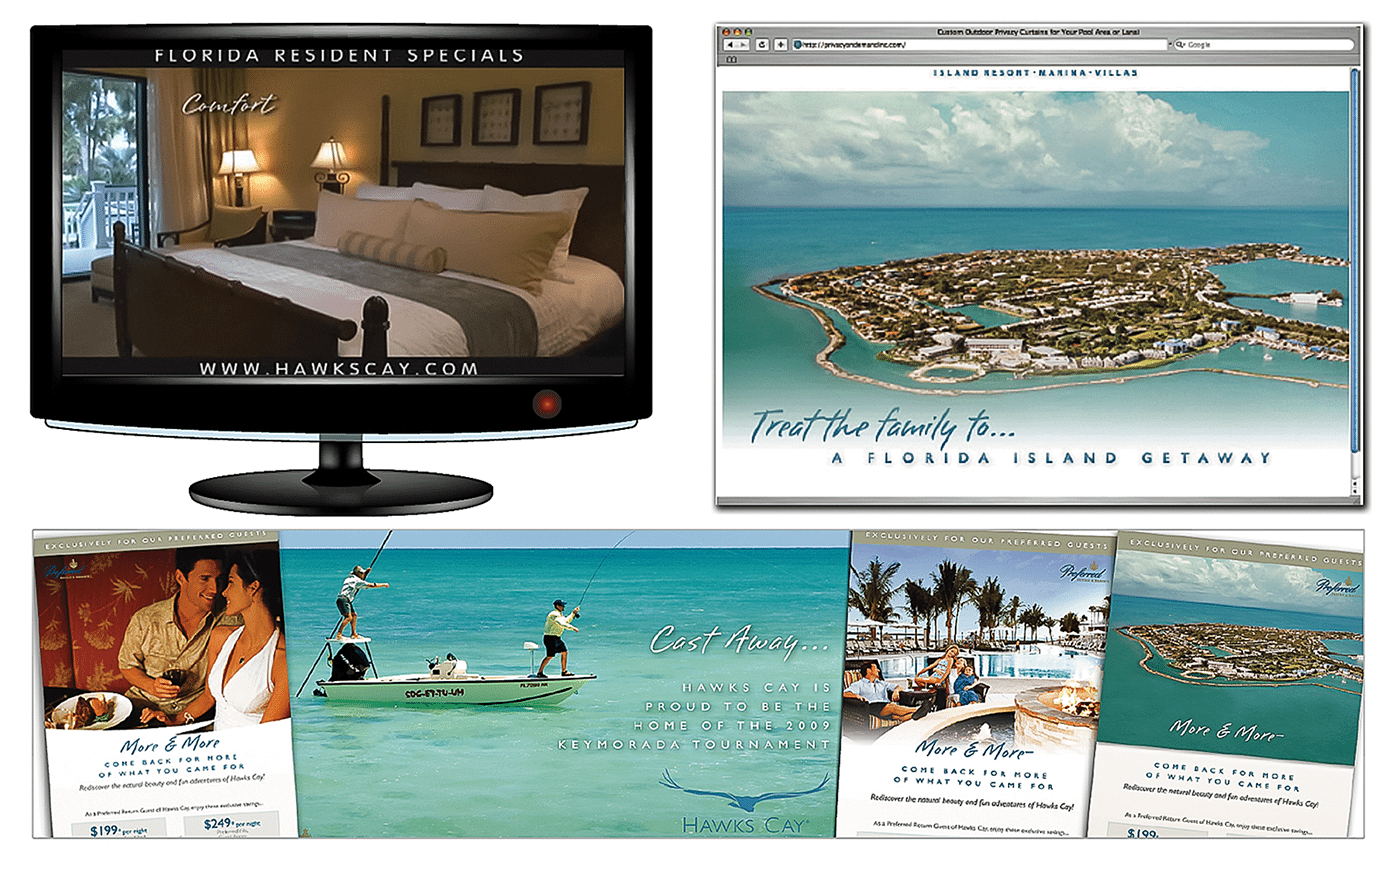 Integrated Hotel Advertising Agency Creative for Hawks Cay